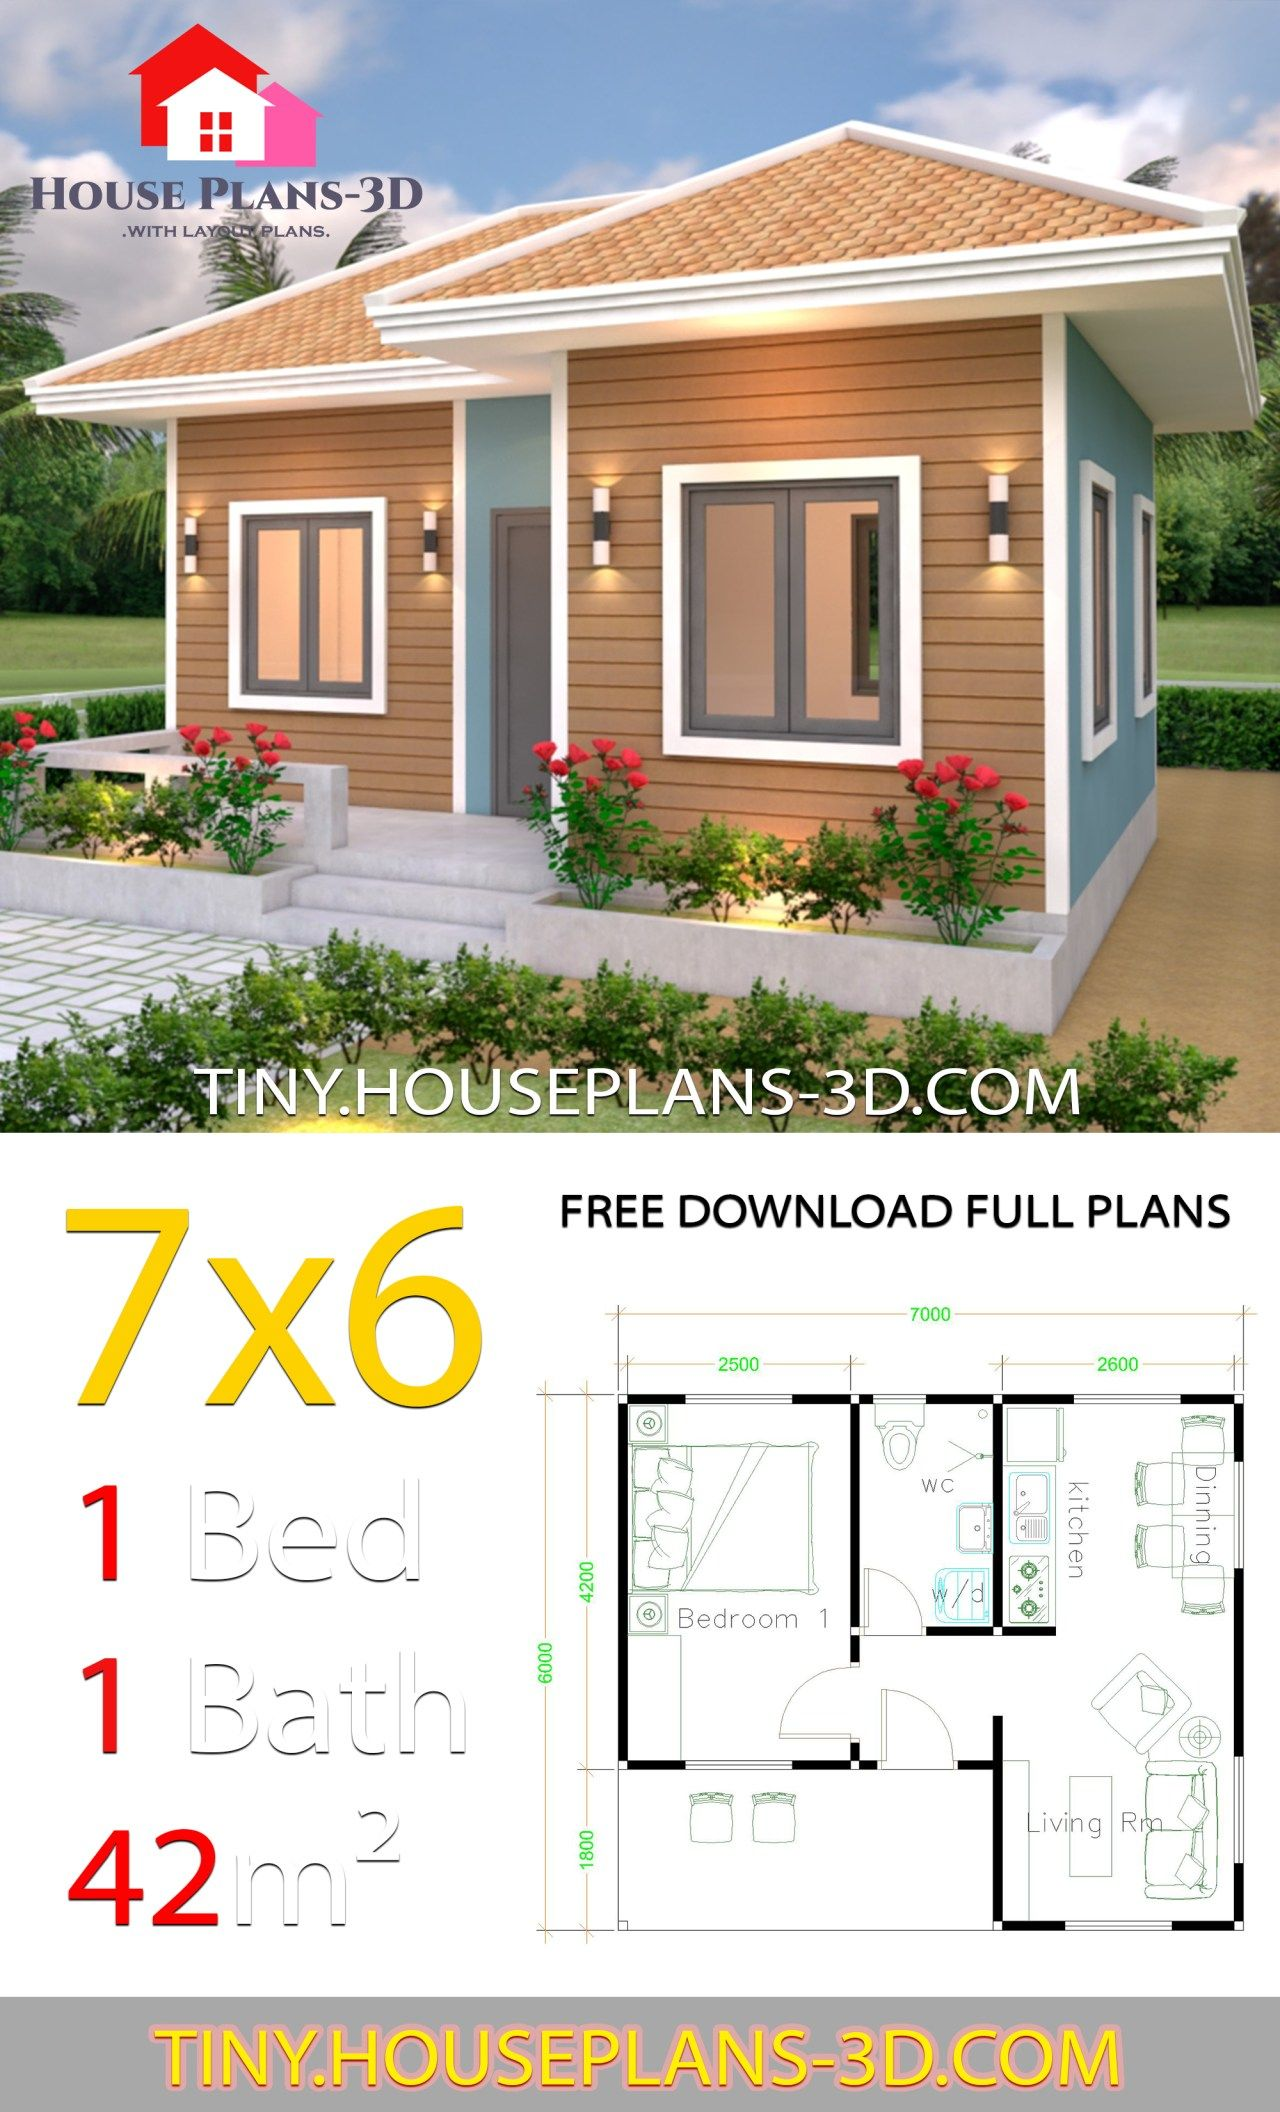 Tiny House Plans 7x6 With One Bedroom Hip Roof Tiny House Plans Tiny House Plans House Plans How To Plan